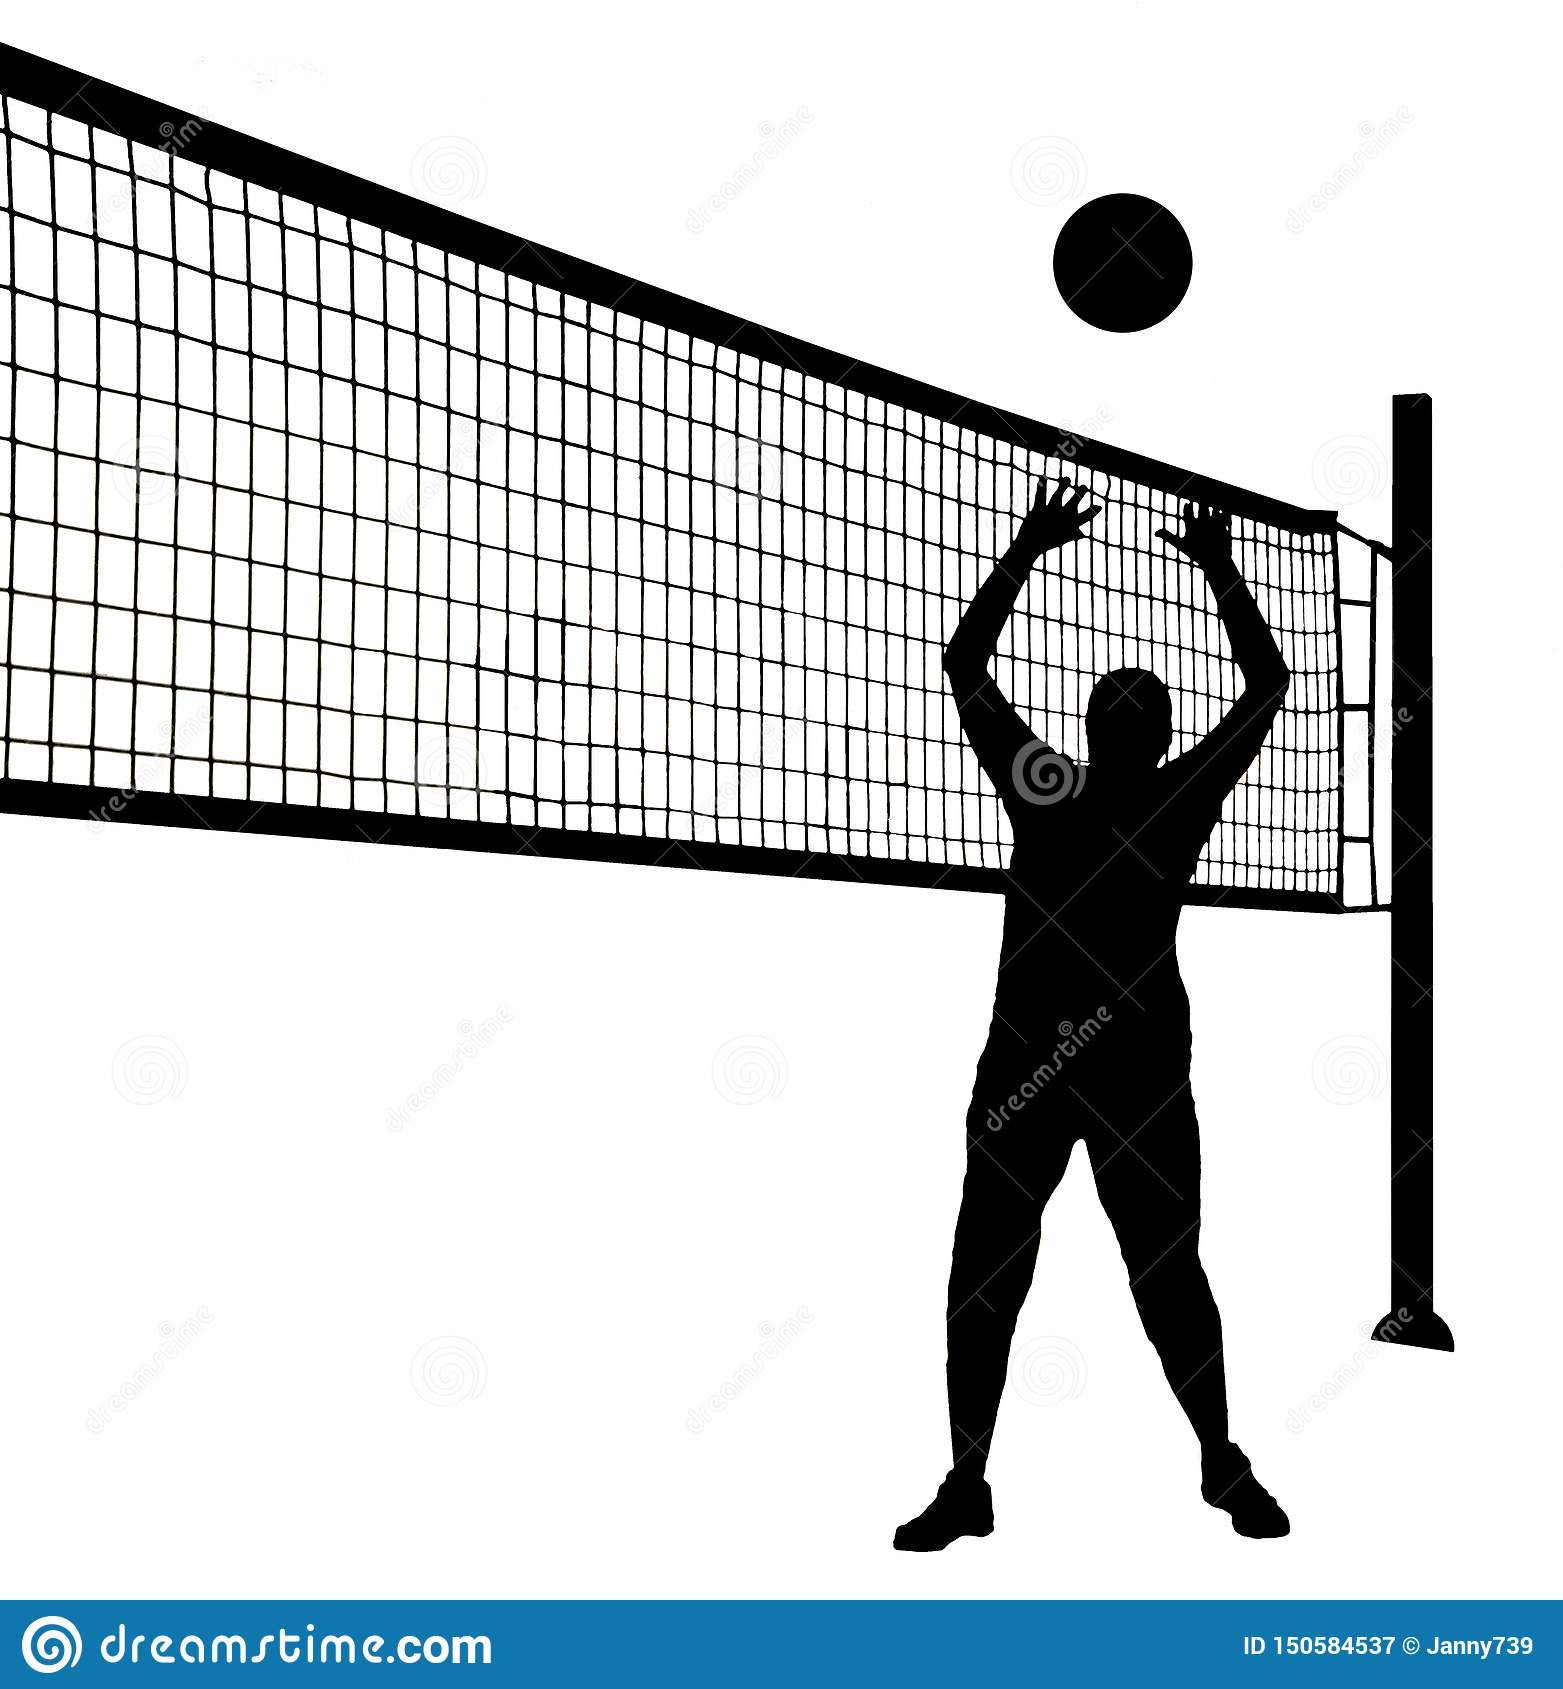 Volleyball Player Silhouette Sports Vinyl Sticker Car Decal